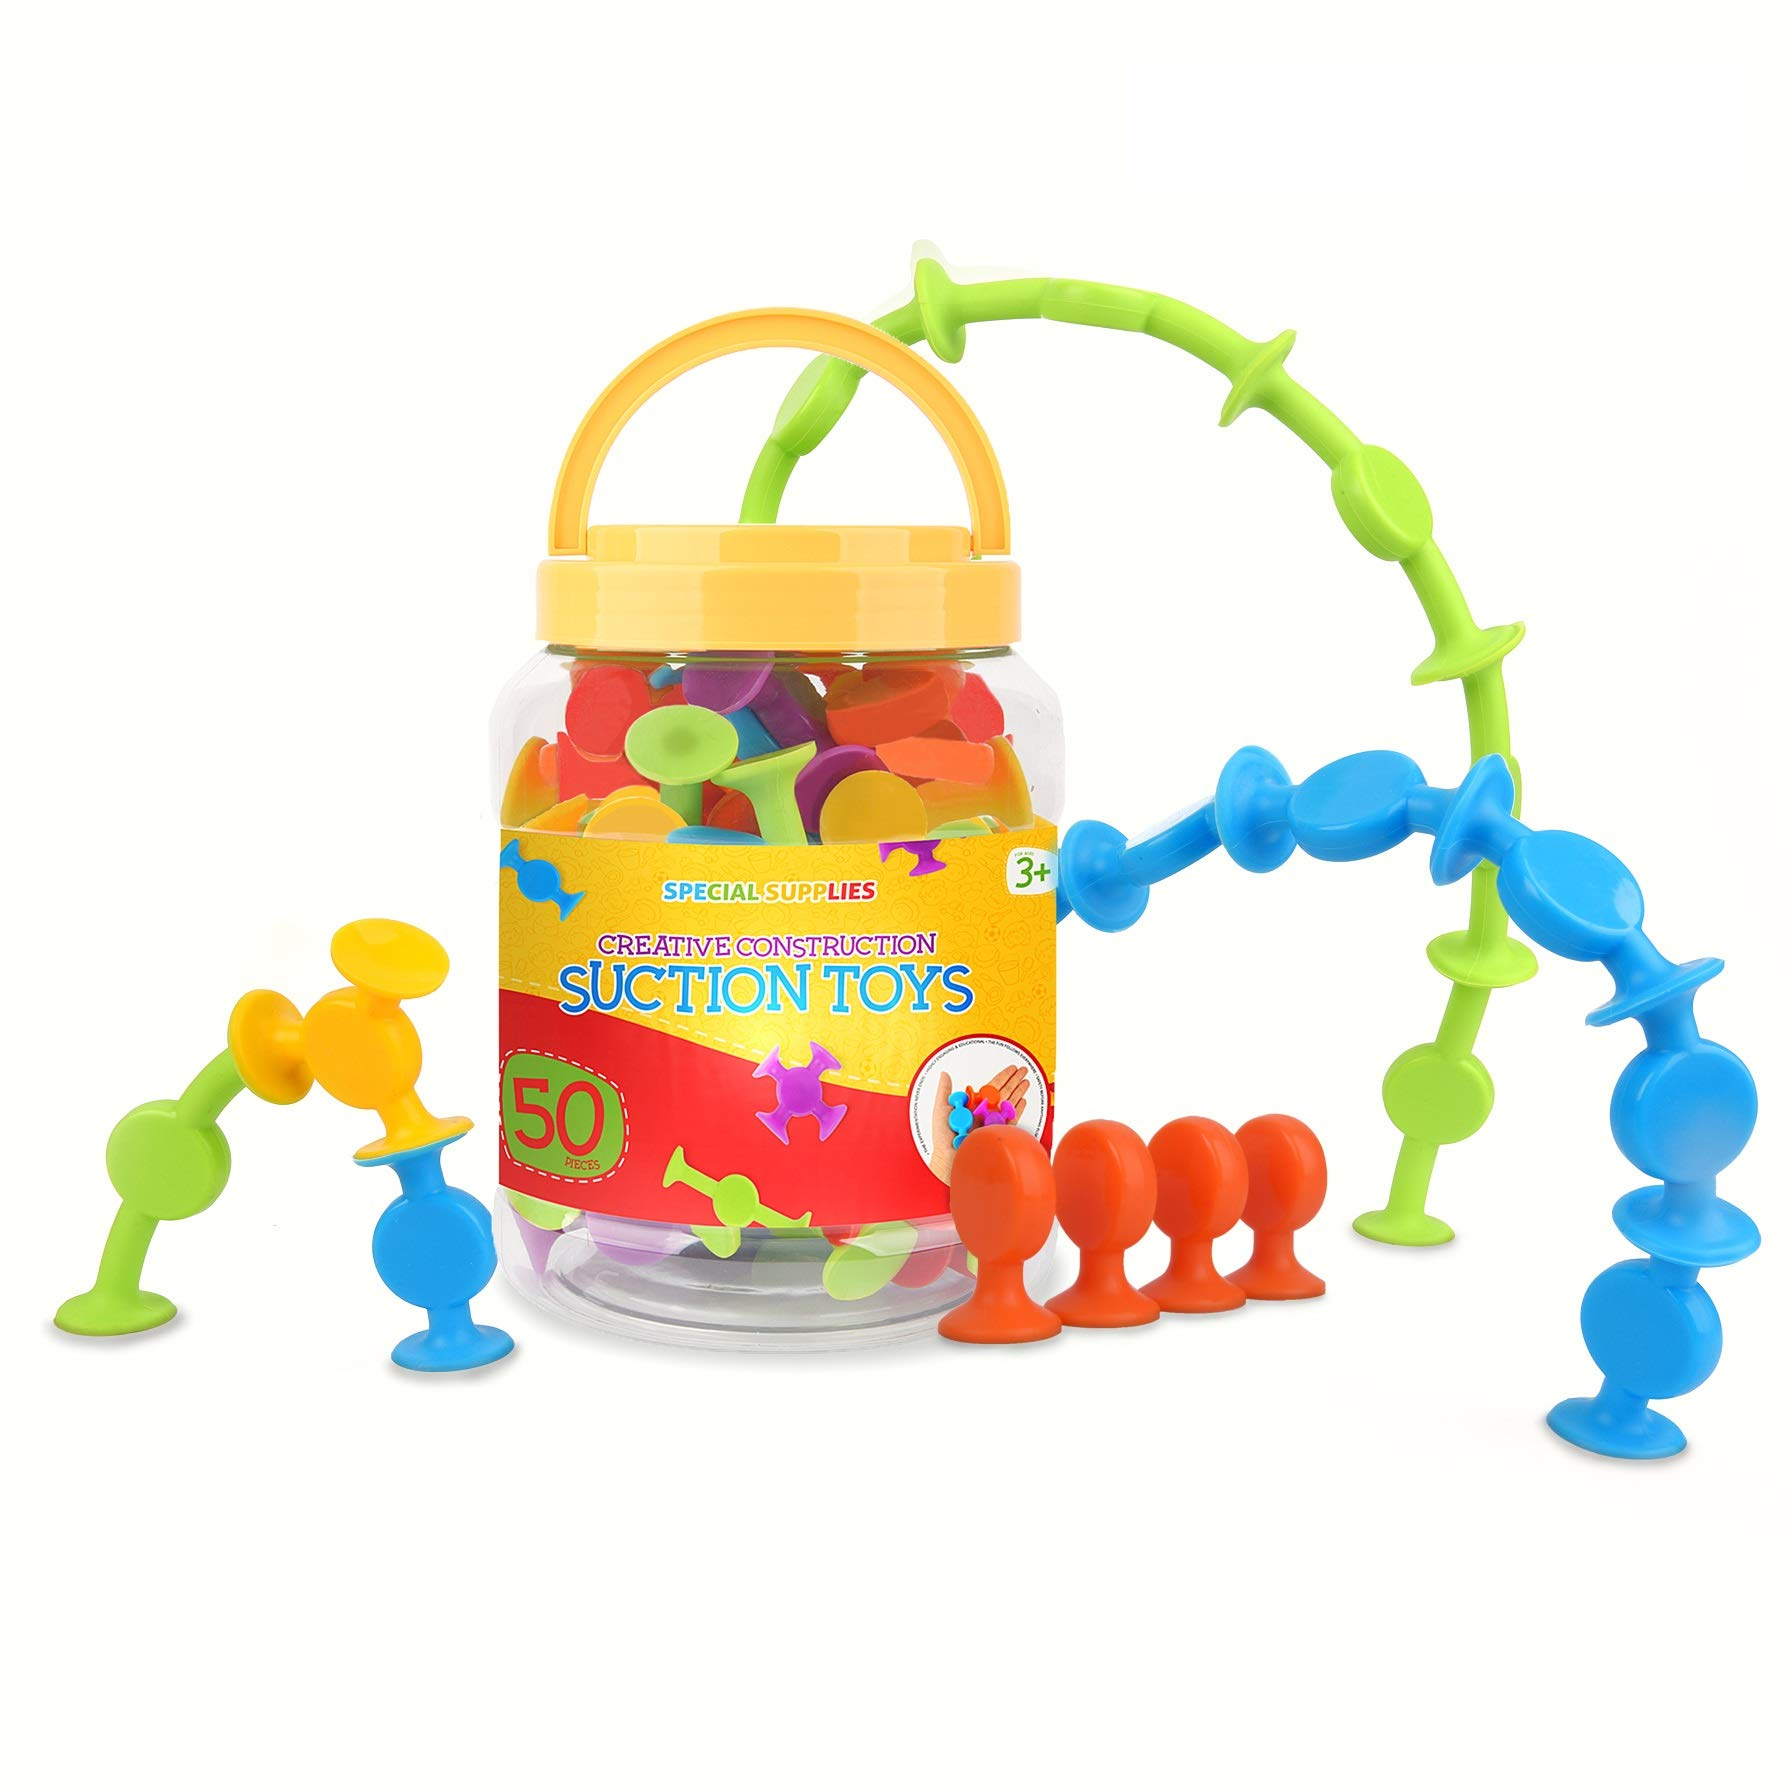 Suction Construction Toys Set for Children | 50-Pcs| Motor Skills, Hand-Eye Coordination, Sensory, Creativity & Imagination Boosting Educational Toys| Vibrant Colors| For Kids, Toddlers, Boys